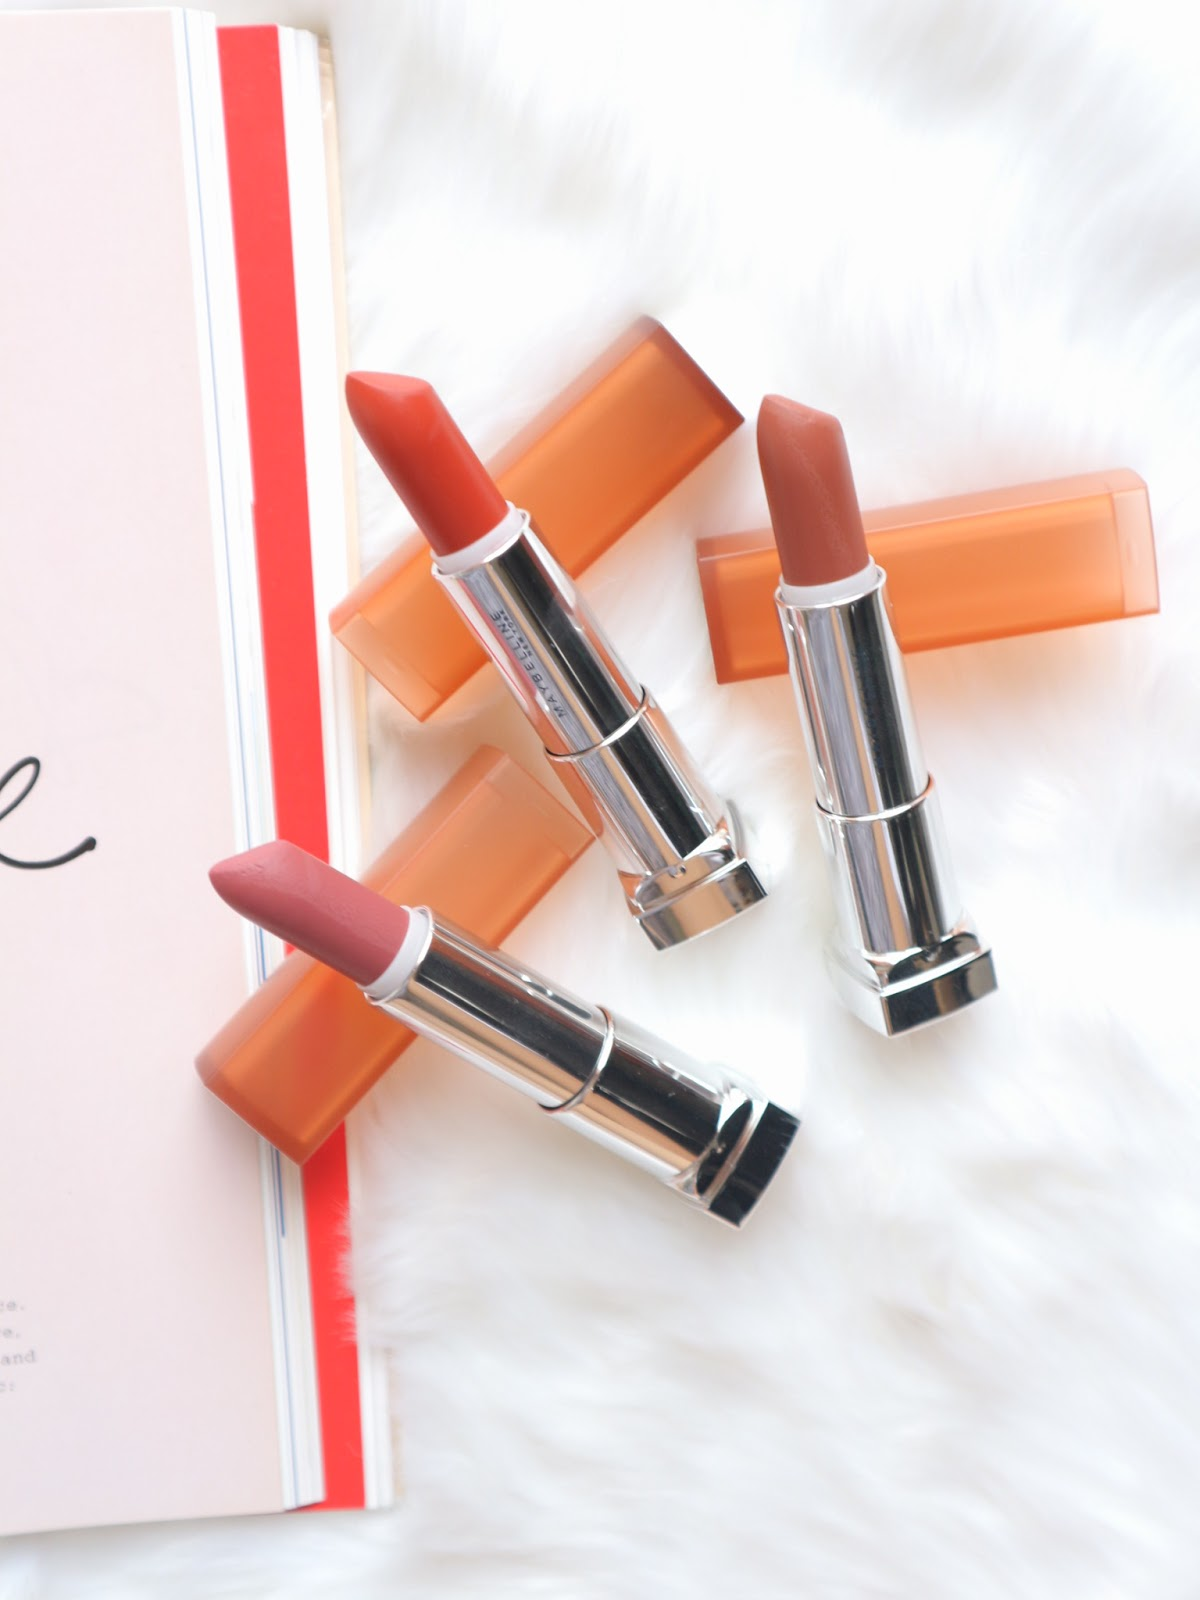 Maybelline Almond Pink Chili Nude Toasted Brown Lipstick Review Swatch